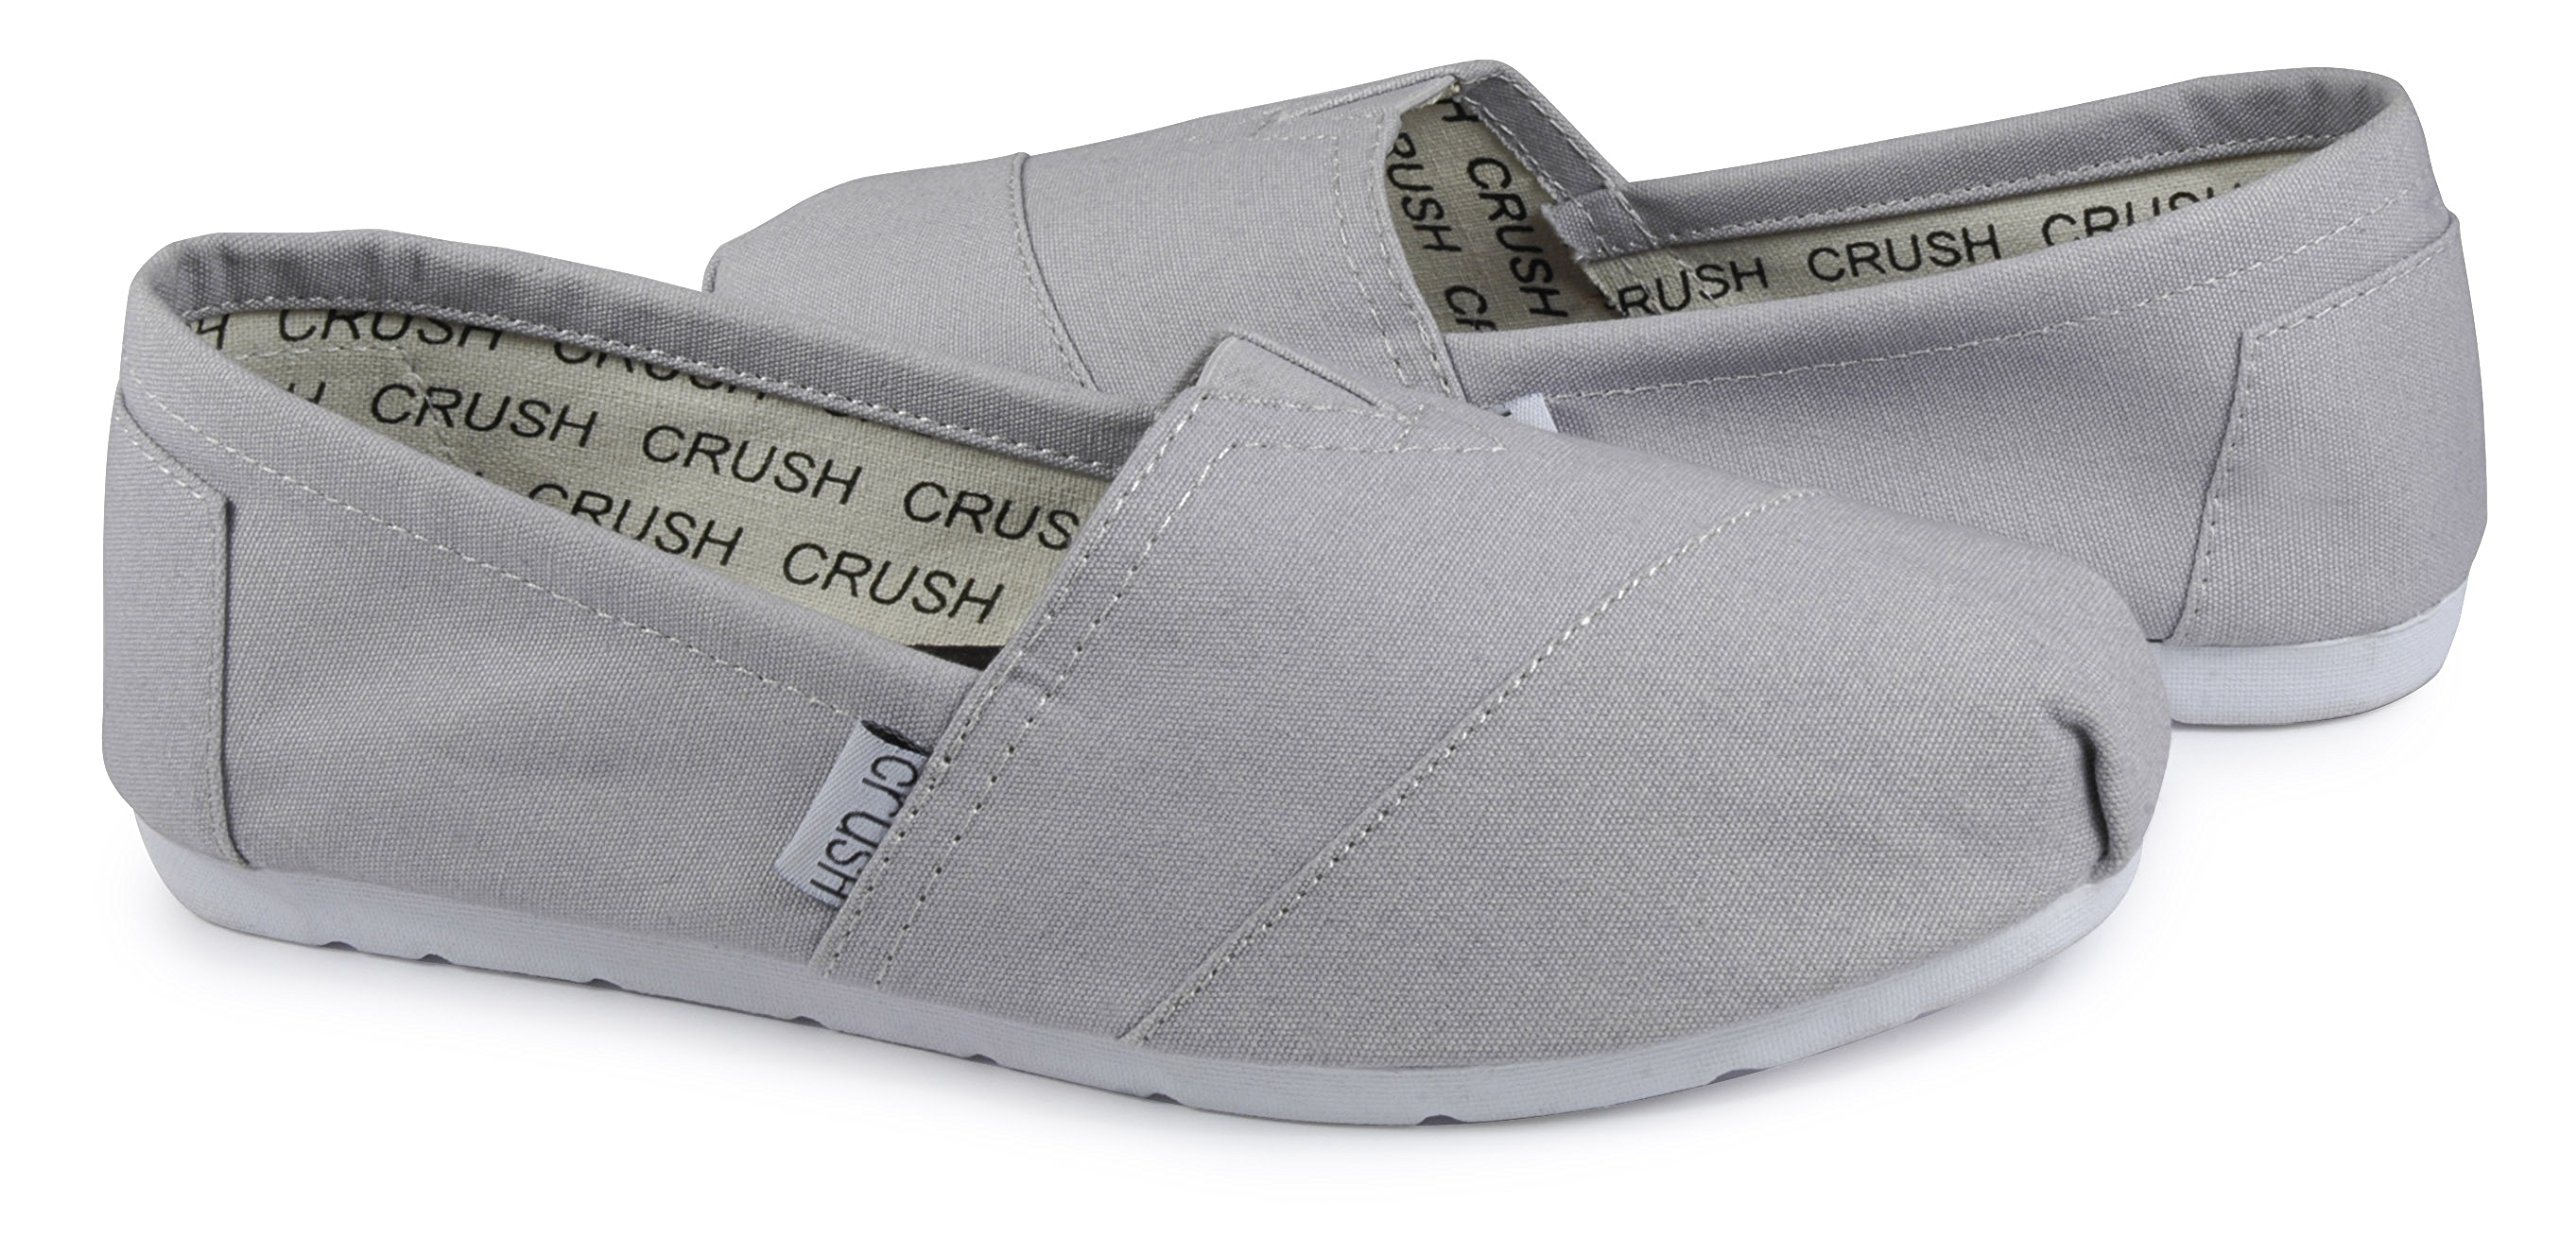 Crush Scrubs Women's Canvas Slip On Shoes with Memory Foam Anti-Microbial Insoles and Anti Slip Sole (Extra Insoles and Bag)